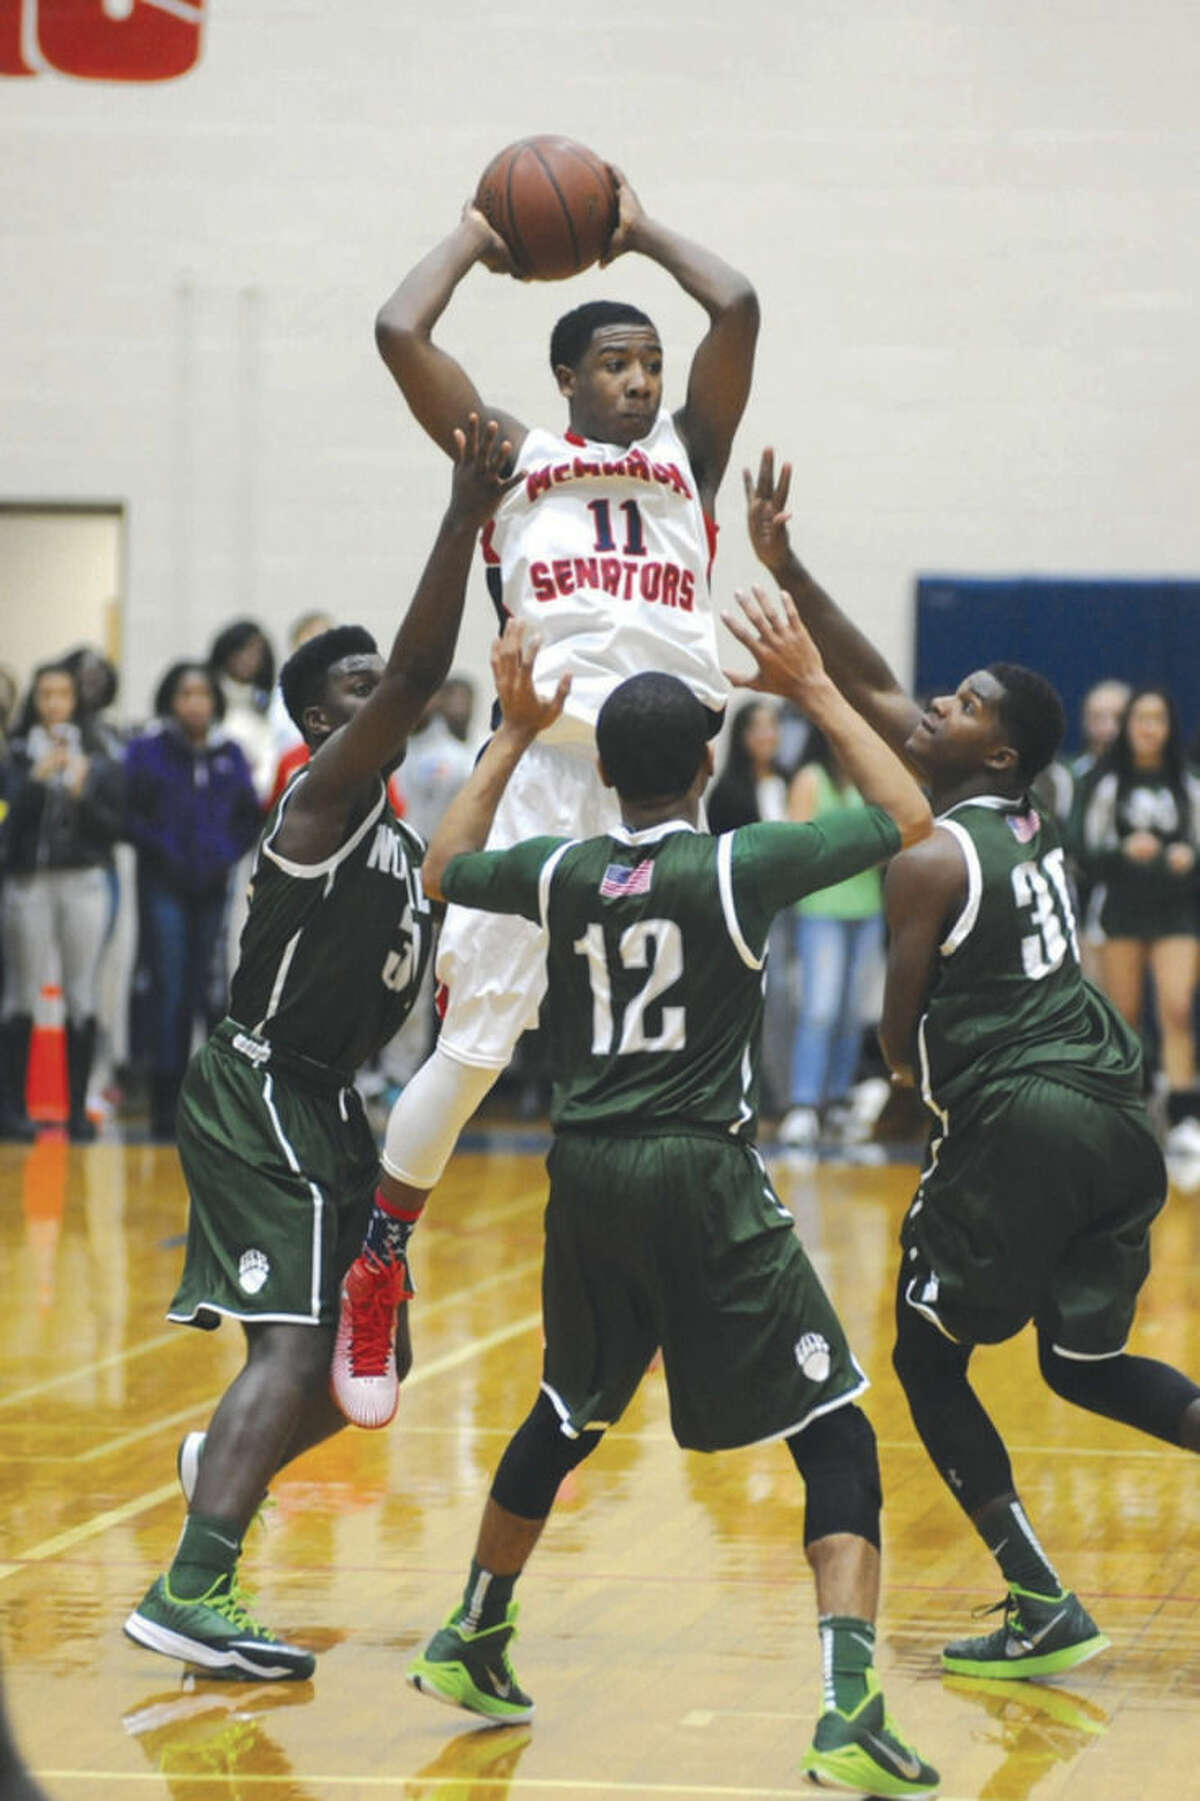 Hour photo/John Nash McMahon's Jahmerikah Green-Younger (11) jumps to make a pass over a trio of Norwalk defenders during Wednesday night's game.